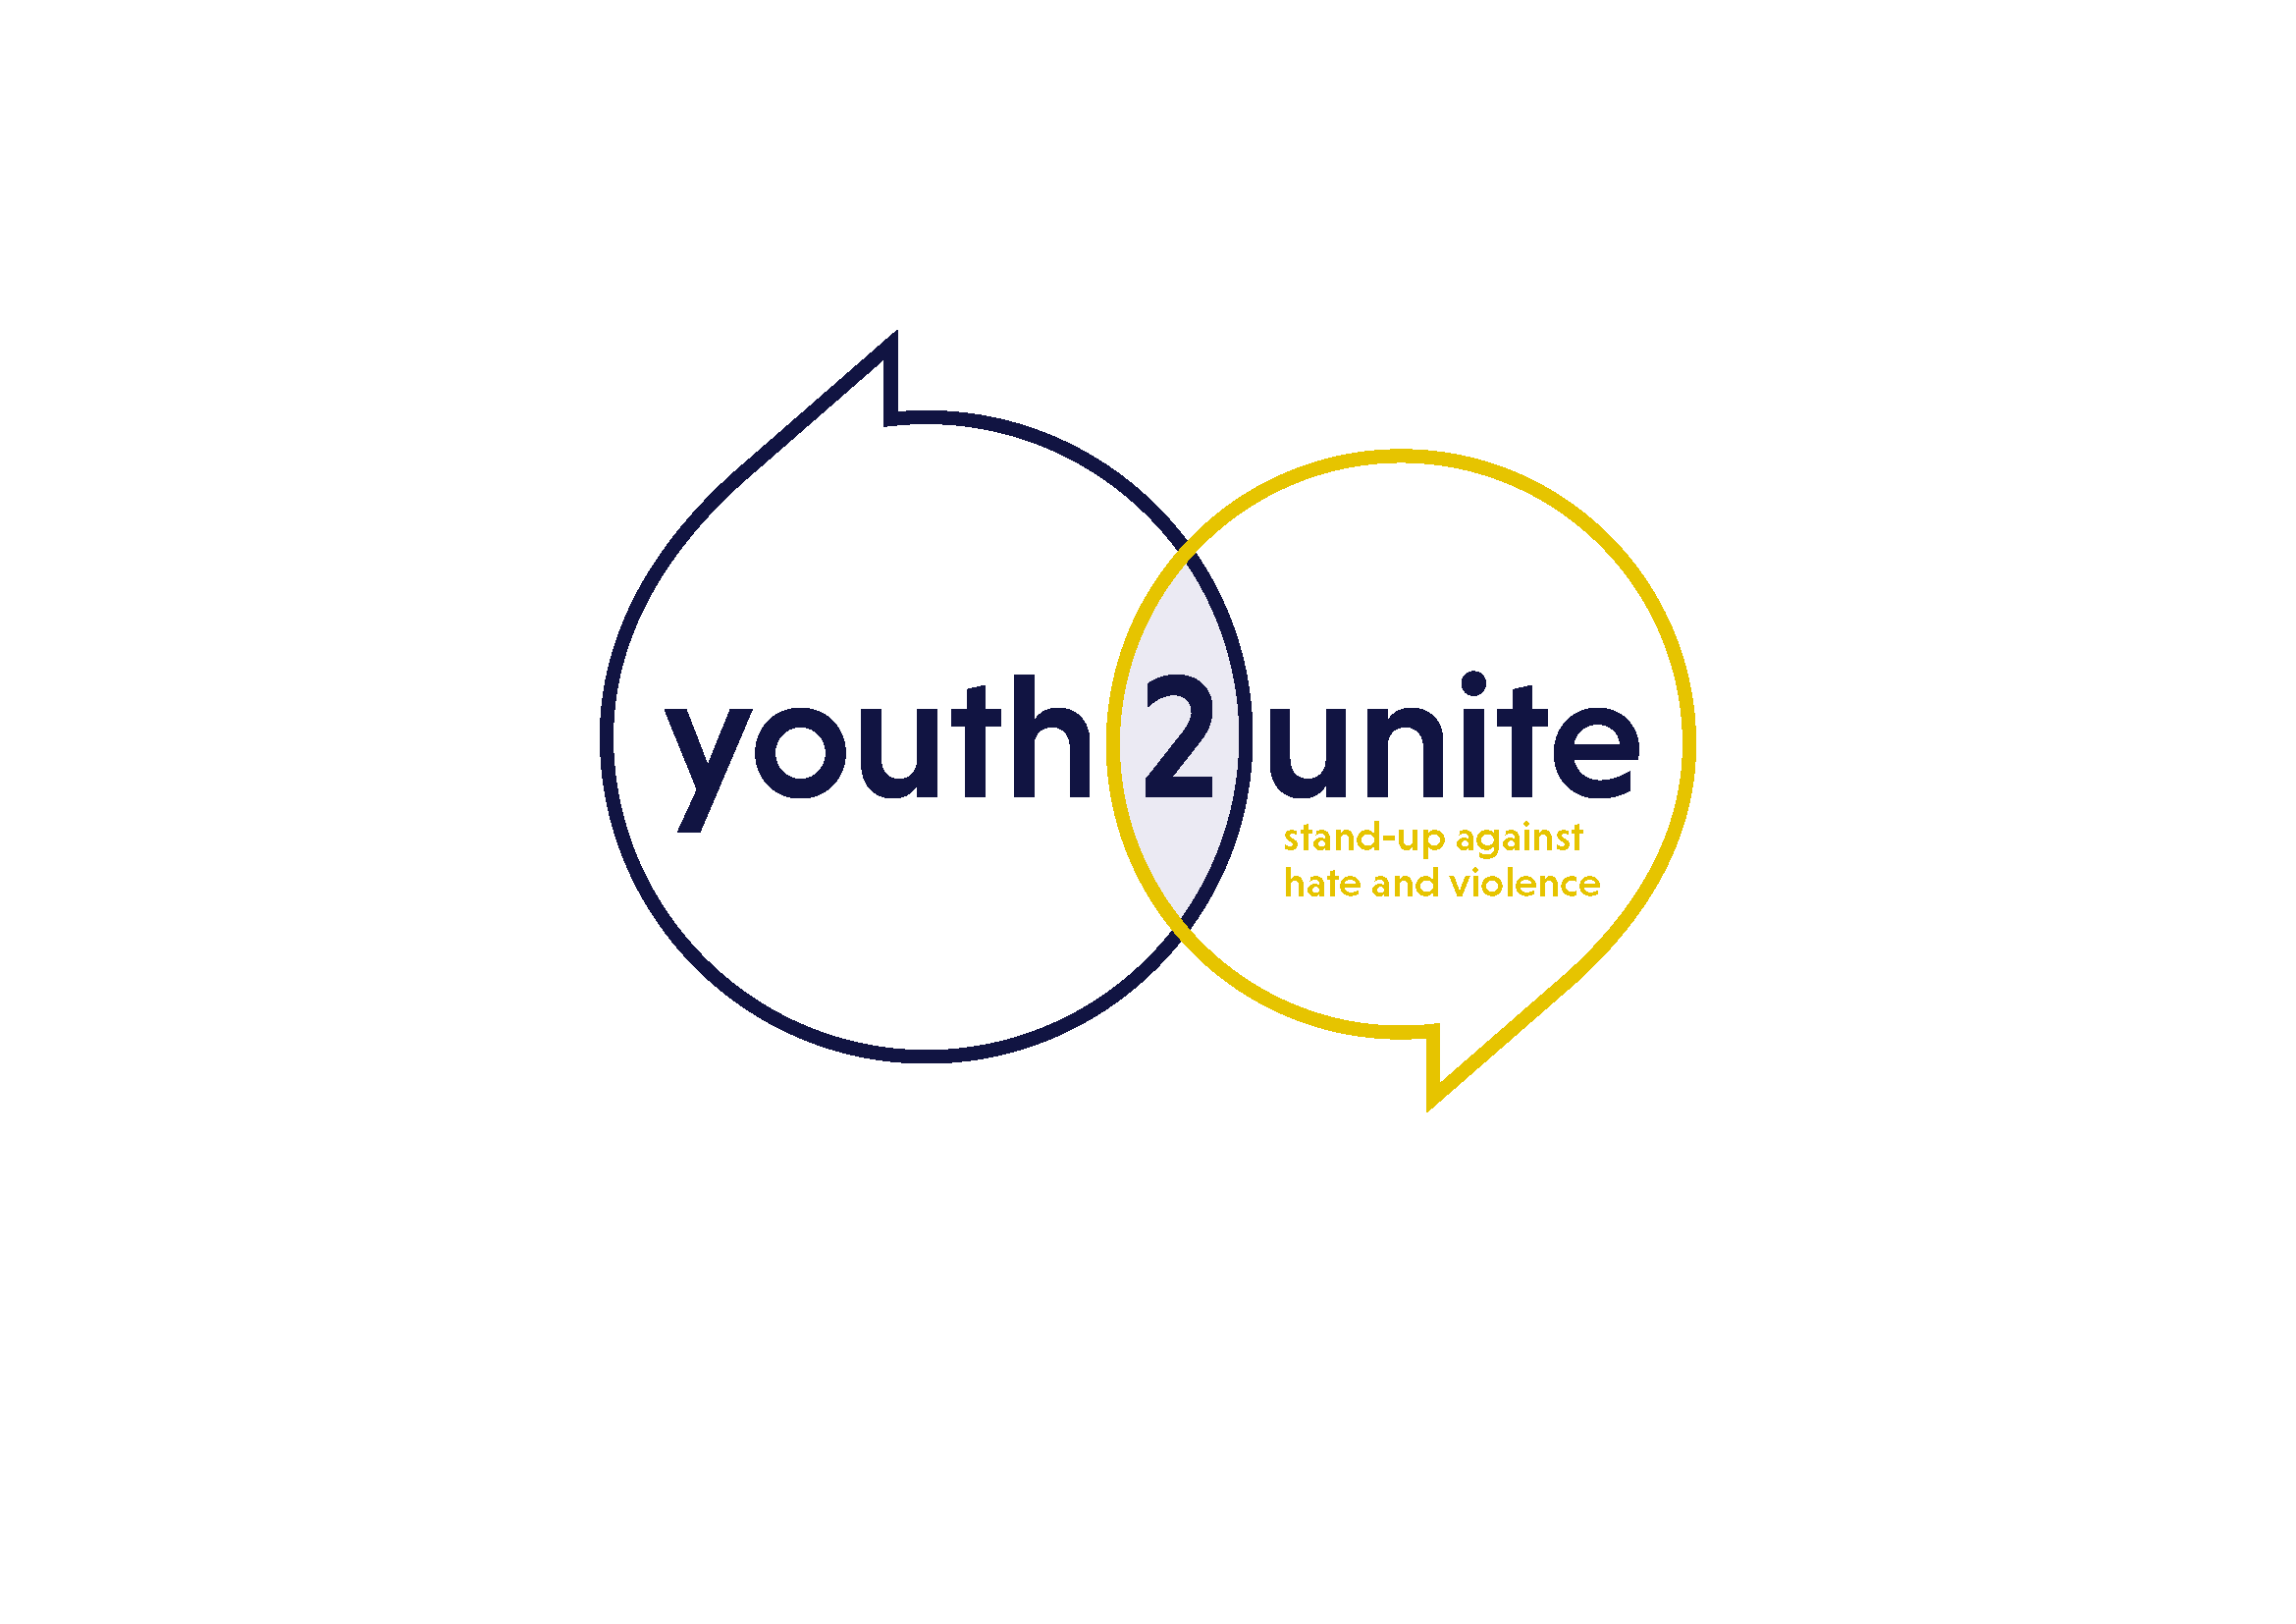 YOUTH 2 UNITE PISTES SOLIDAIRES ERASMUS PLUS